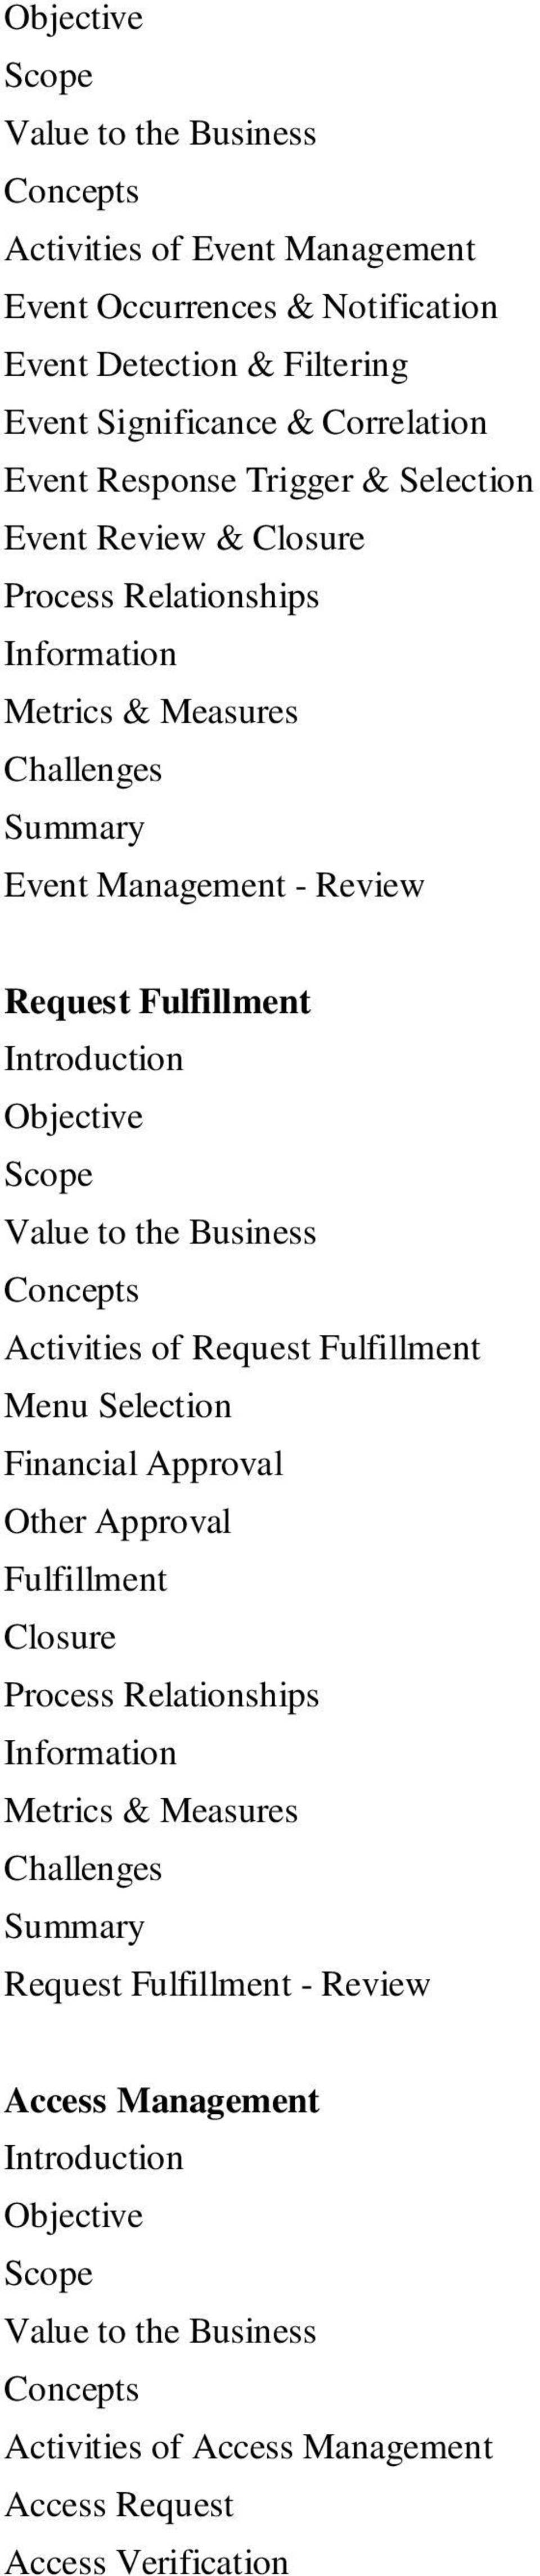 Fulfillment Activities of Request Fulfillment Menu Selection Financial Approval Other Approval Fulfillment Closure